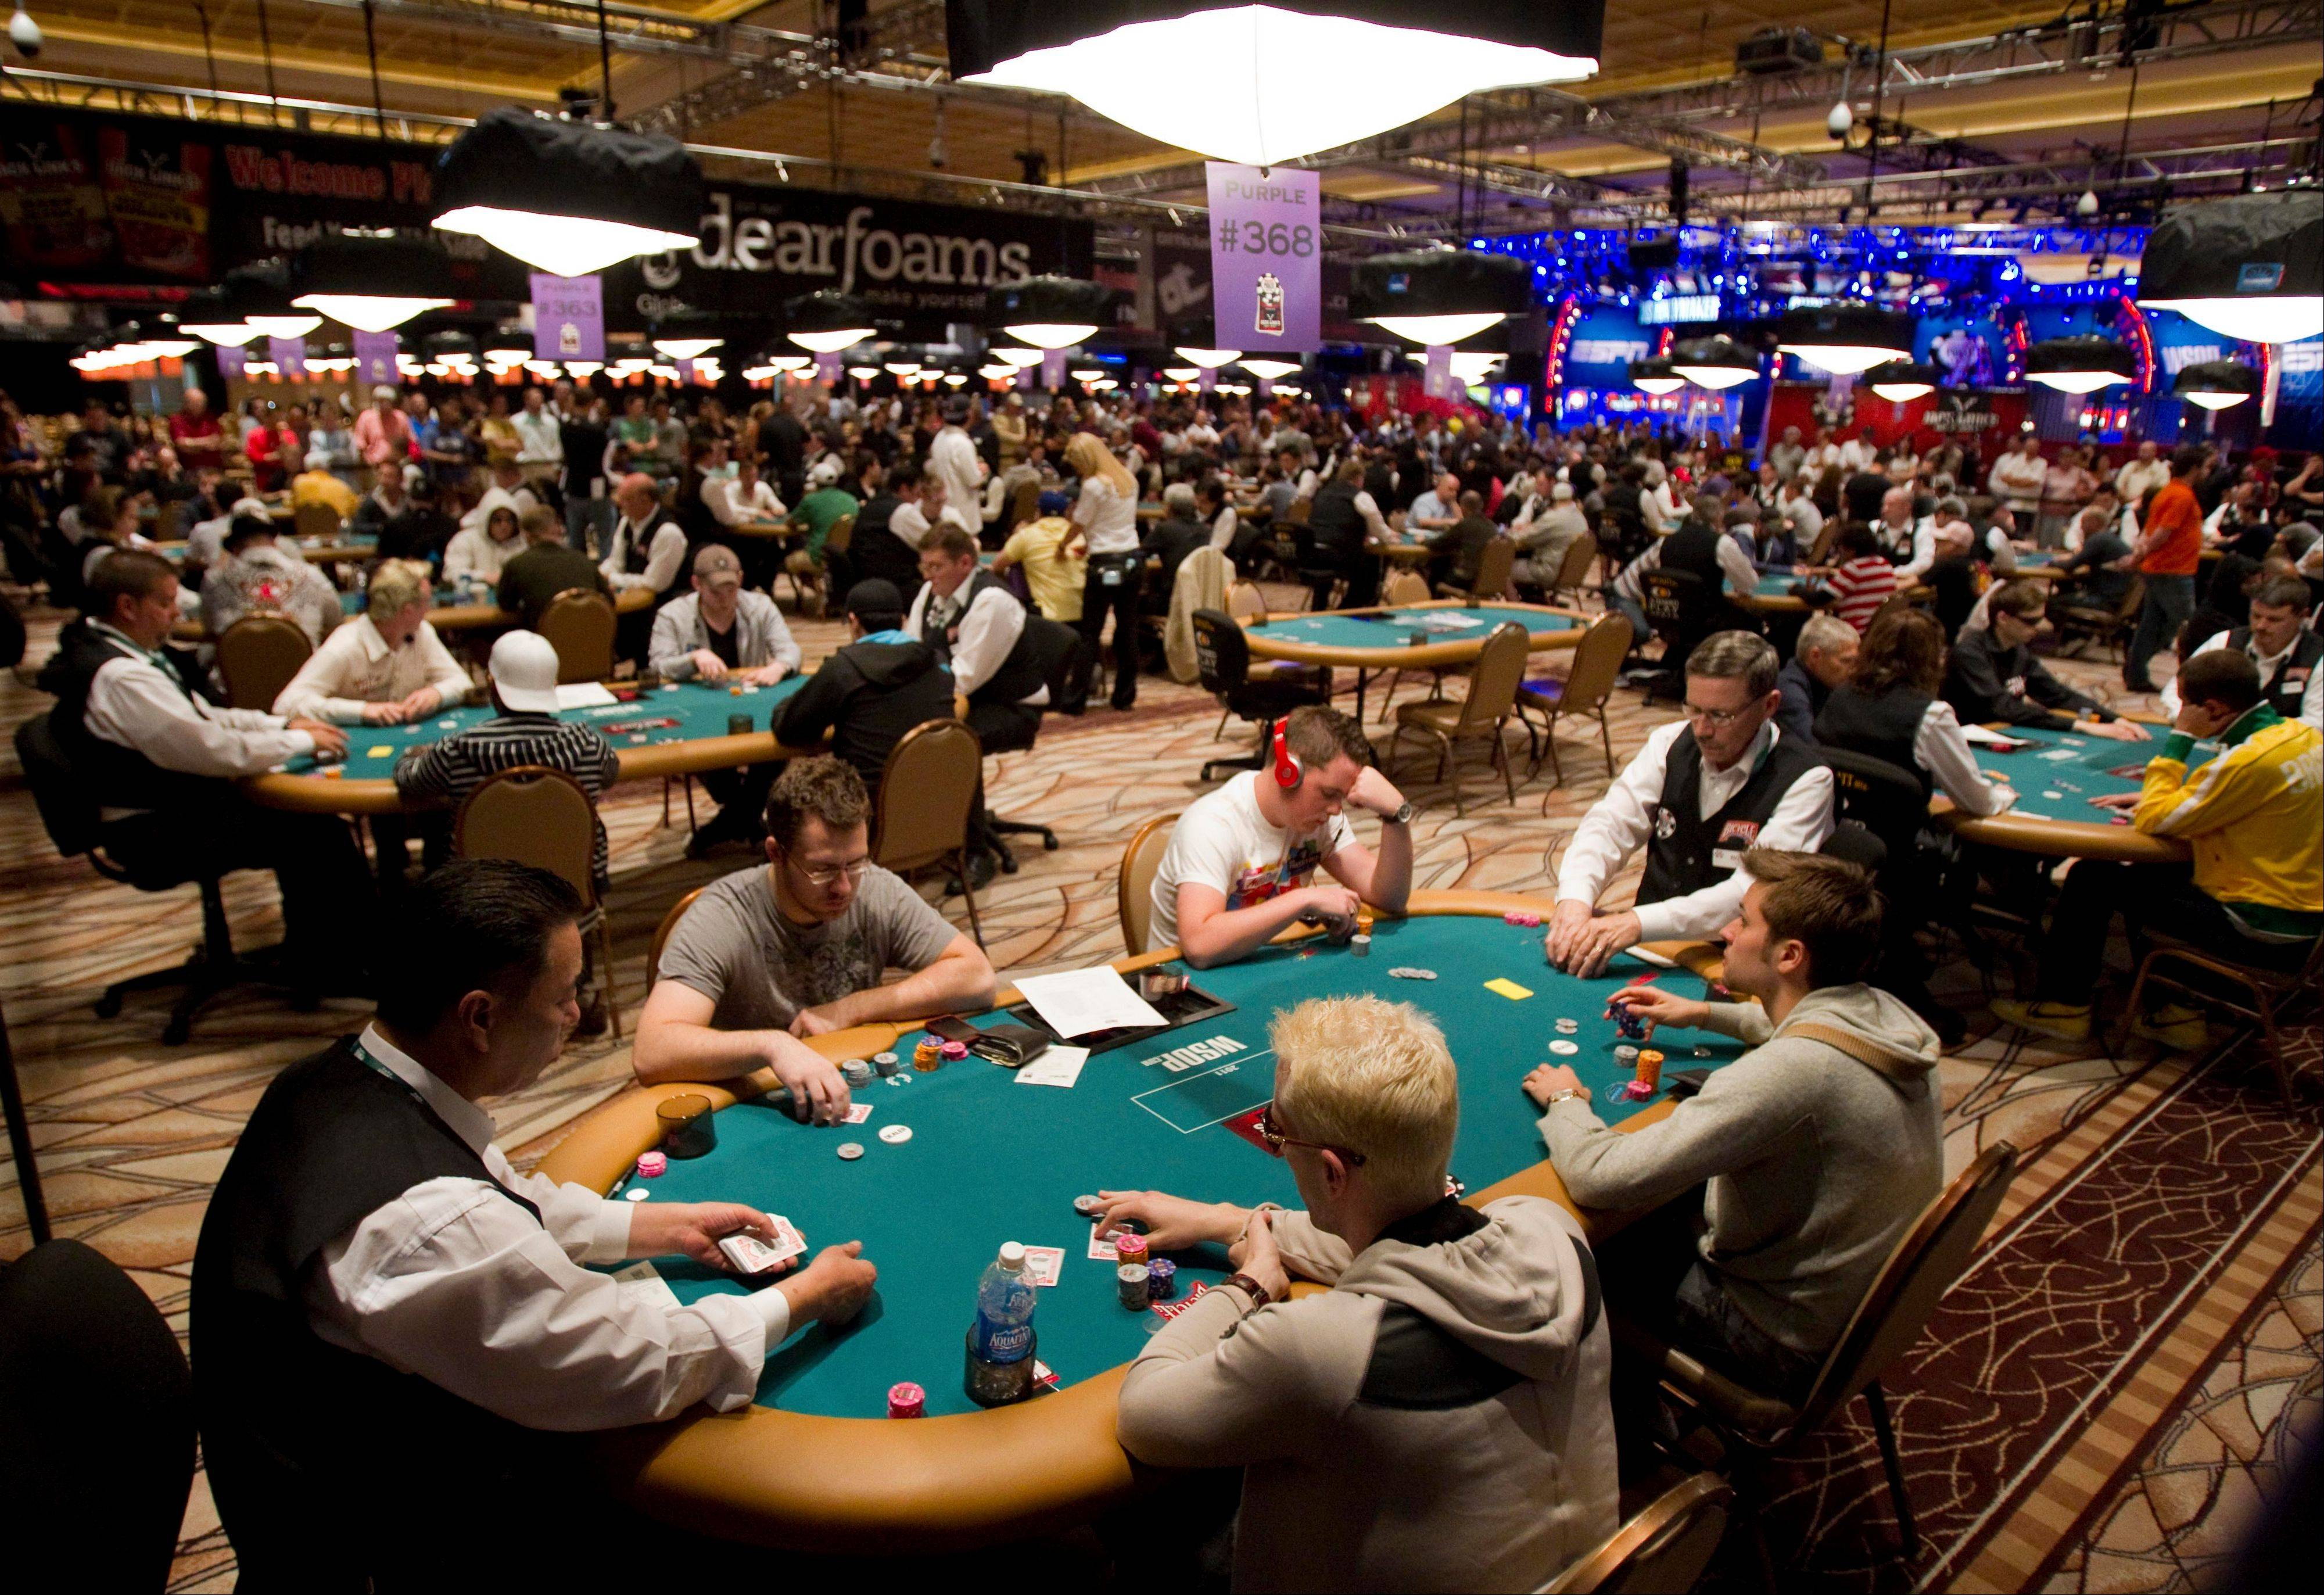 At the height of the poker fad, Las Vegas couldn�t get enough of poker rooms. Now some of those rooms are folding. Four casinos yanked their poker tables last year, including the Tropicana, and three other rooms closed shop in 2011.